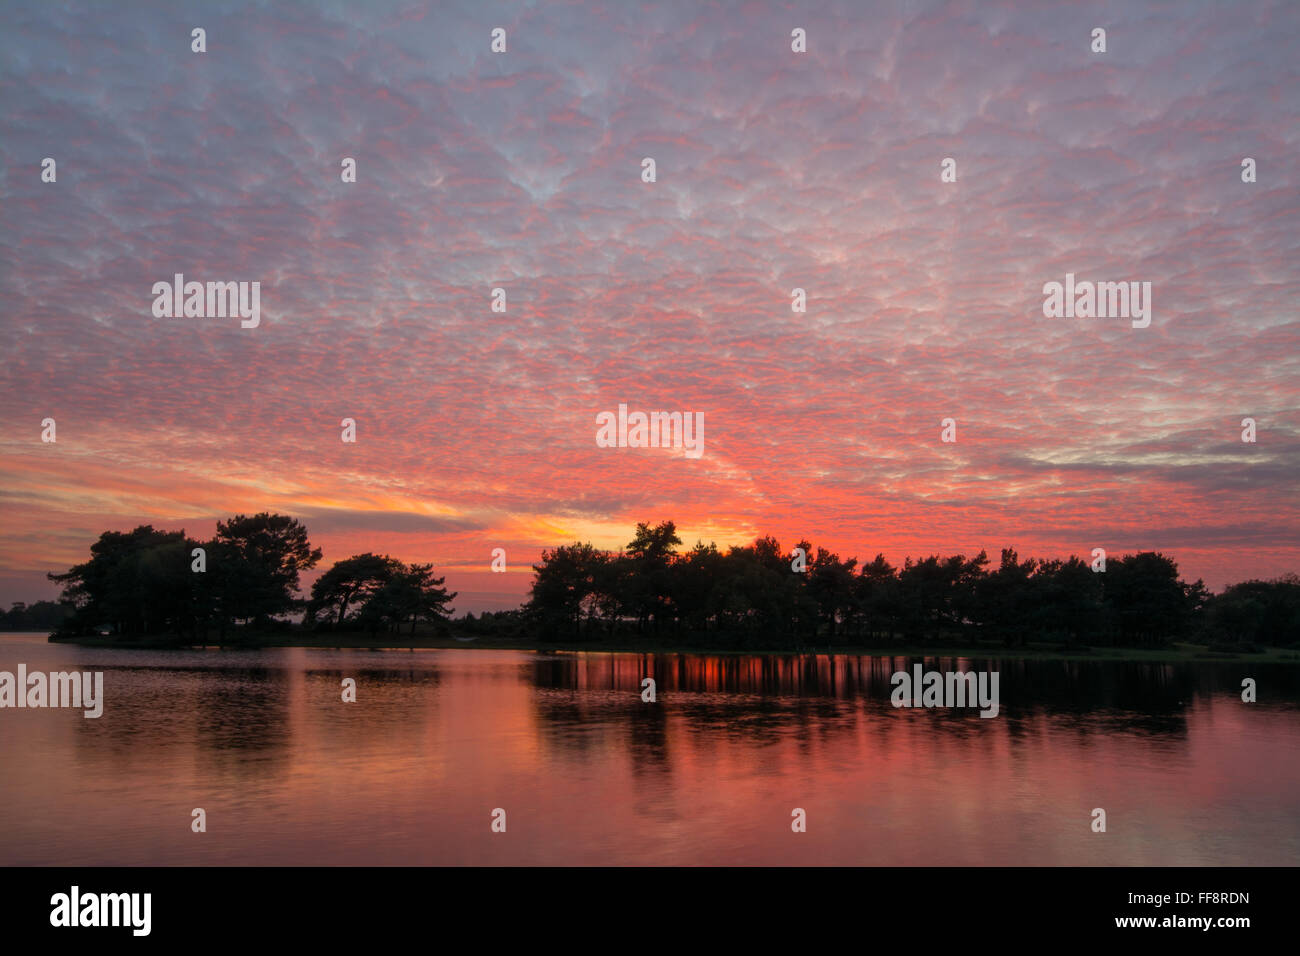 brightly-coloured-sunset-with-mackerel-sky-and-reflections-at-hatchet-FF8RDN.jpg